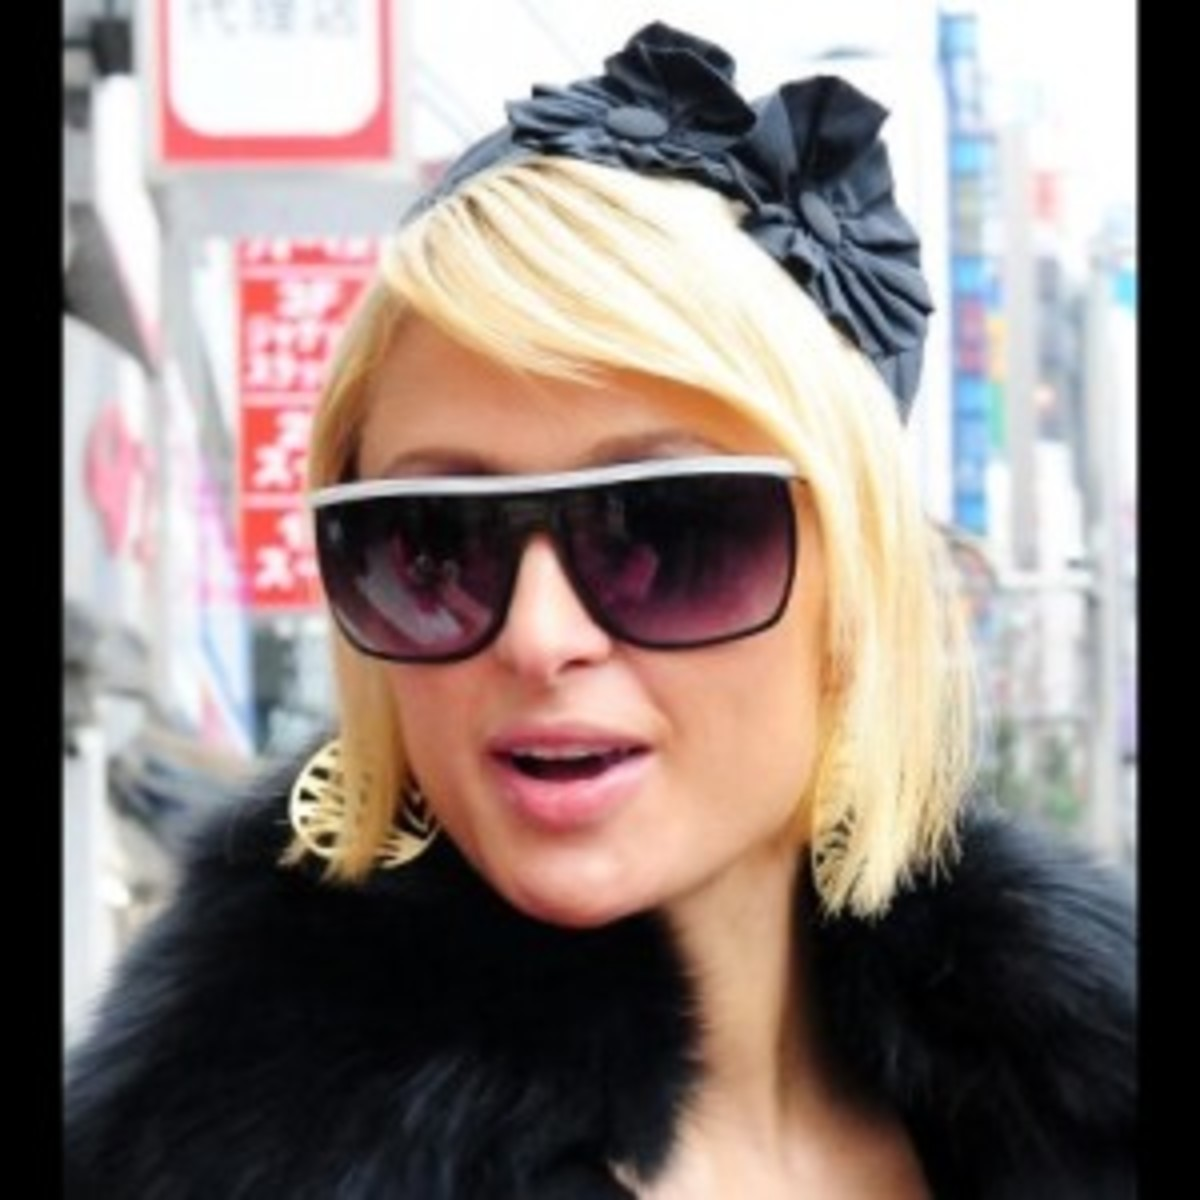 Paris Hilton sports a retro pillbox, proving the pillbox is forever.